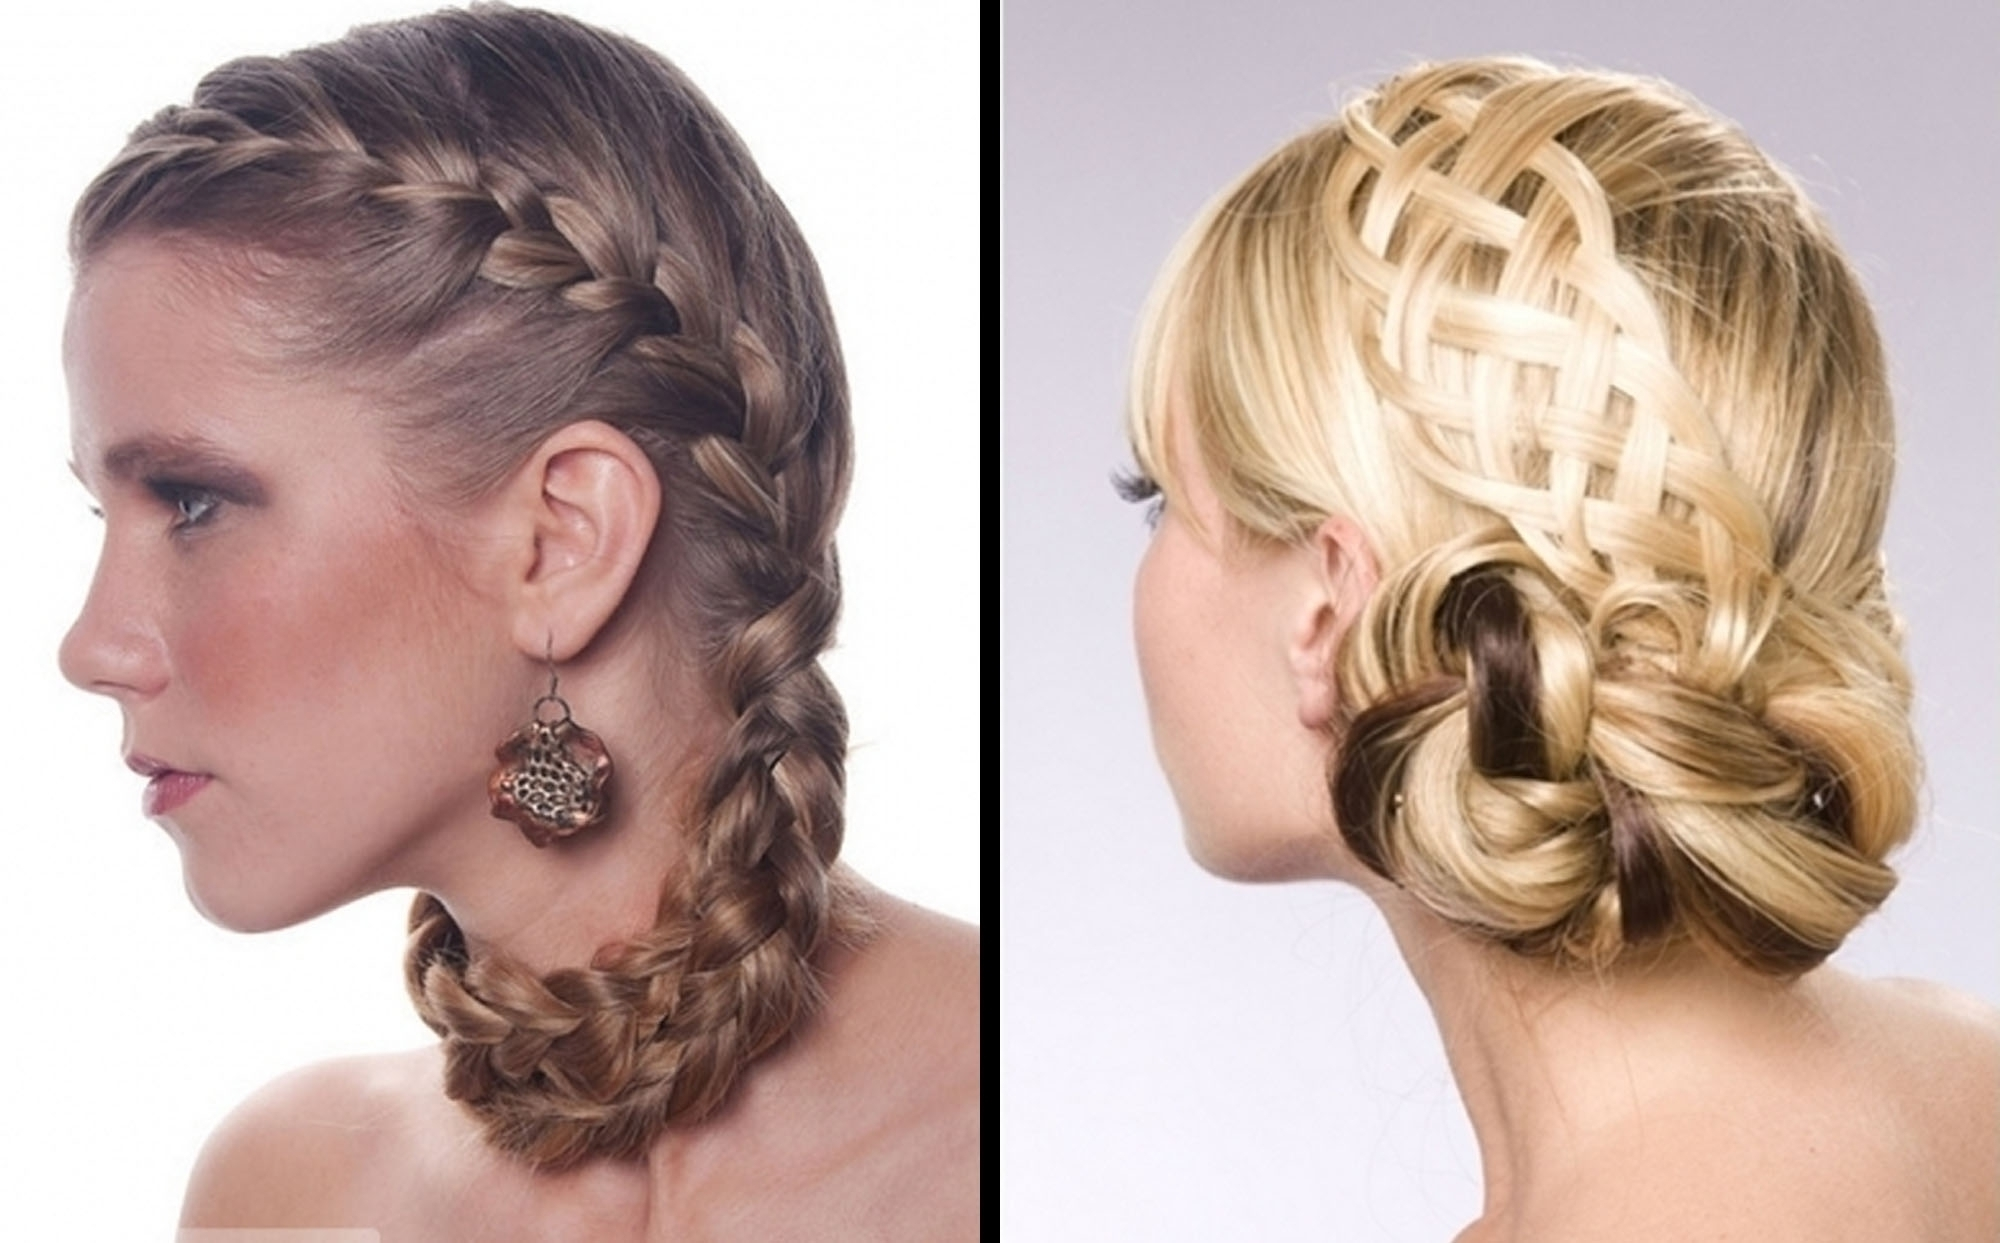 Confortable Short Hairstyles For Brides About Bridesmaid Hairstyles Intended For Most Recent Wedding Hairstyles For Bridesmaids With Short Hair (View 5 of 15)